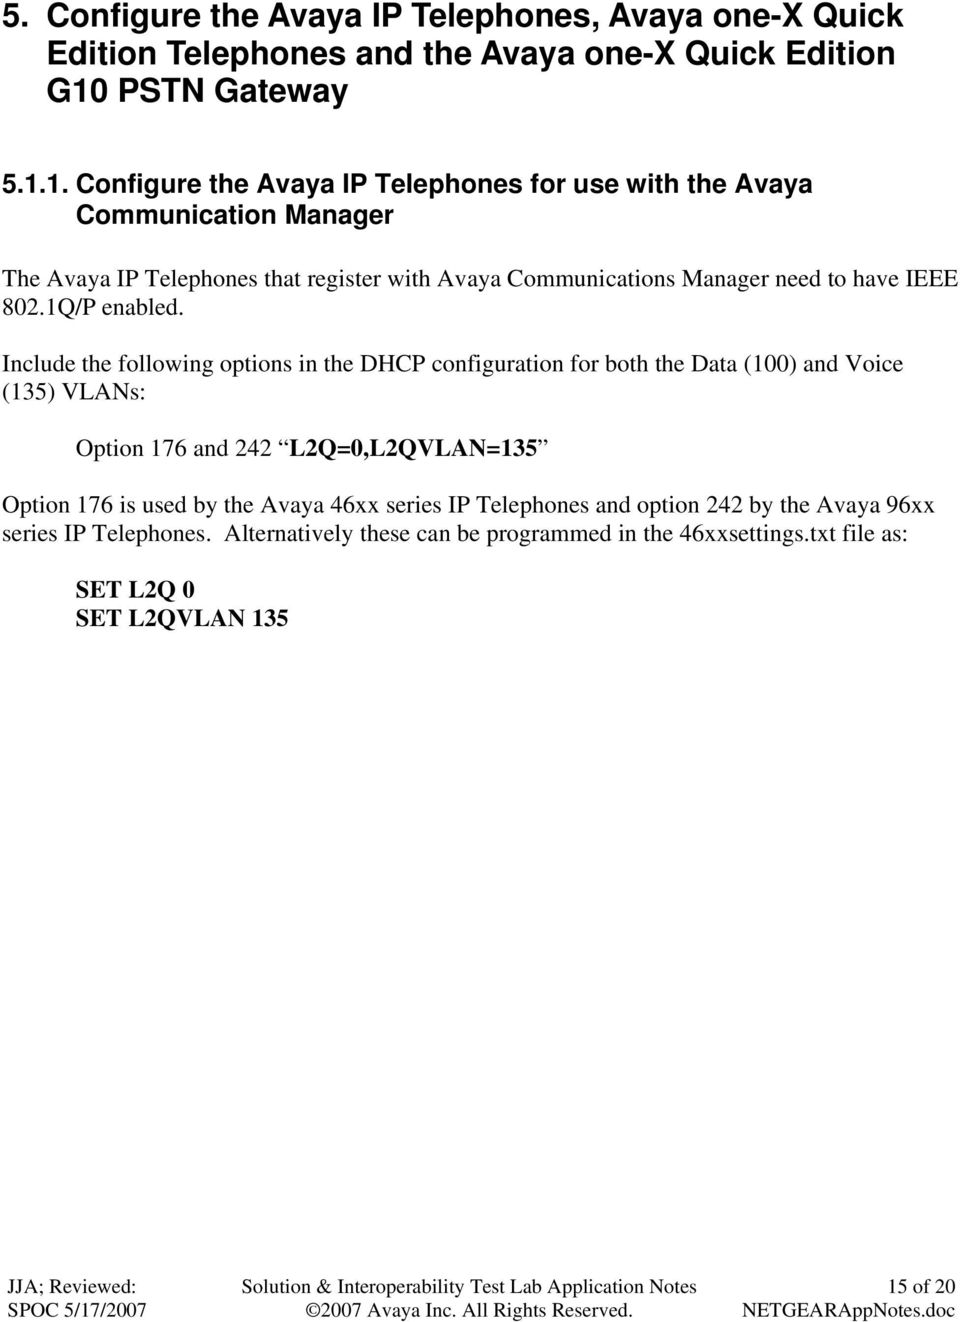 1. Configure the Avaya IP Telephones for use with the Avaya Communication Manager The Avaya IP Telephones that register with Avaya Communications Manager need to have